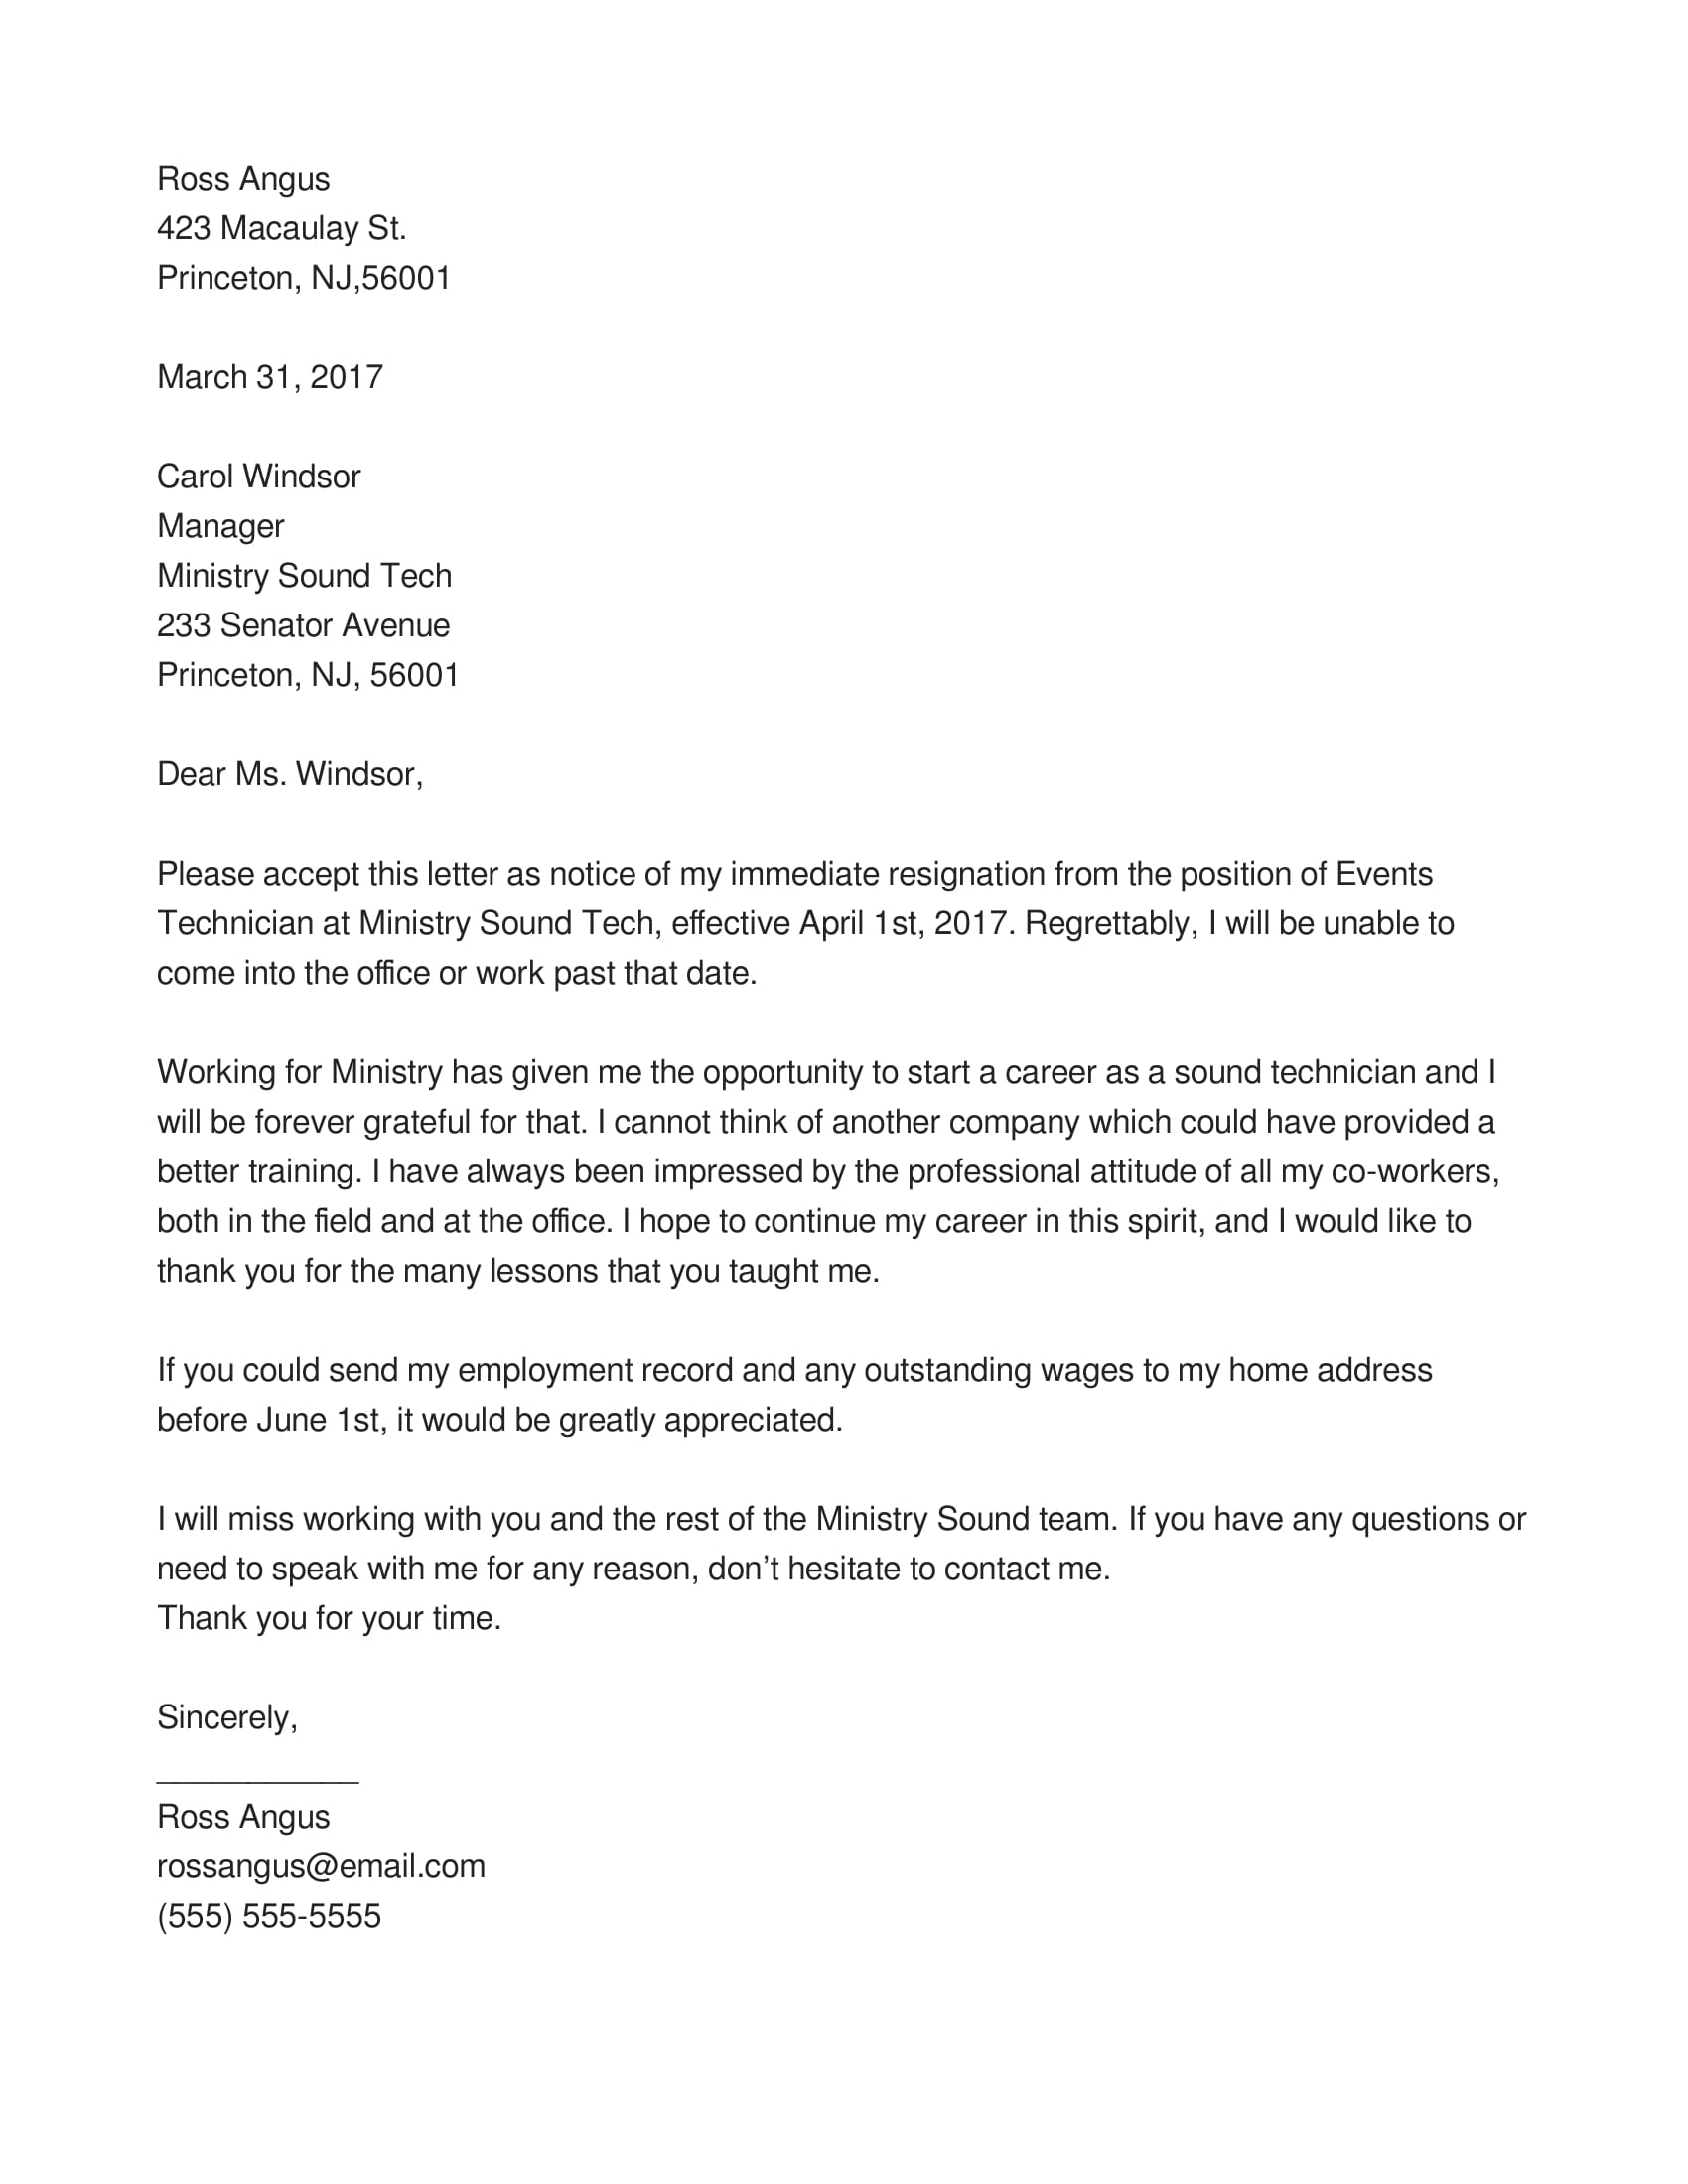 Resignation Letter Sample Pdf from images.examples.com